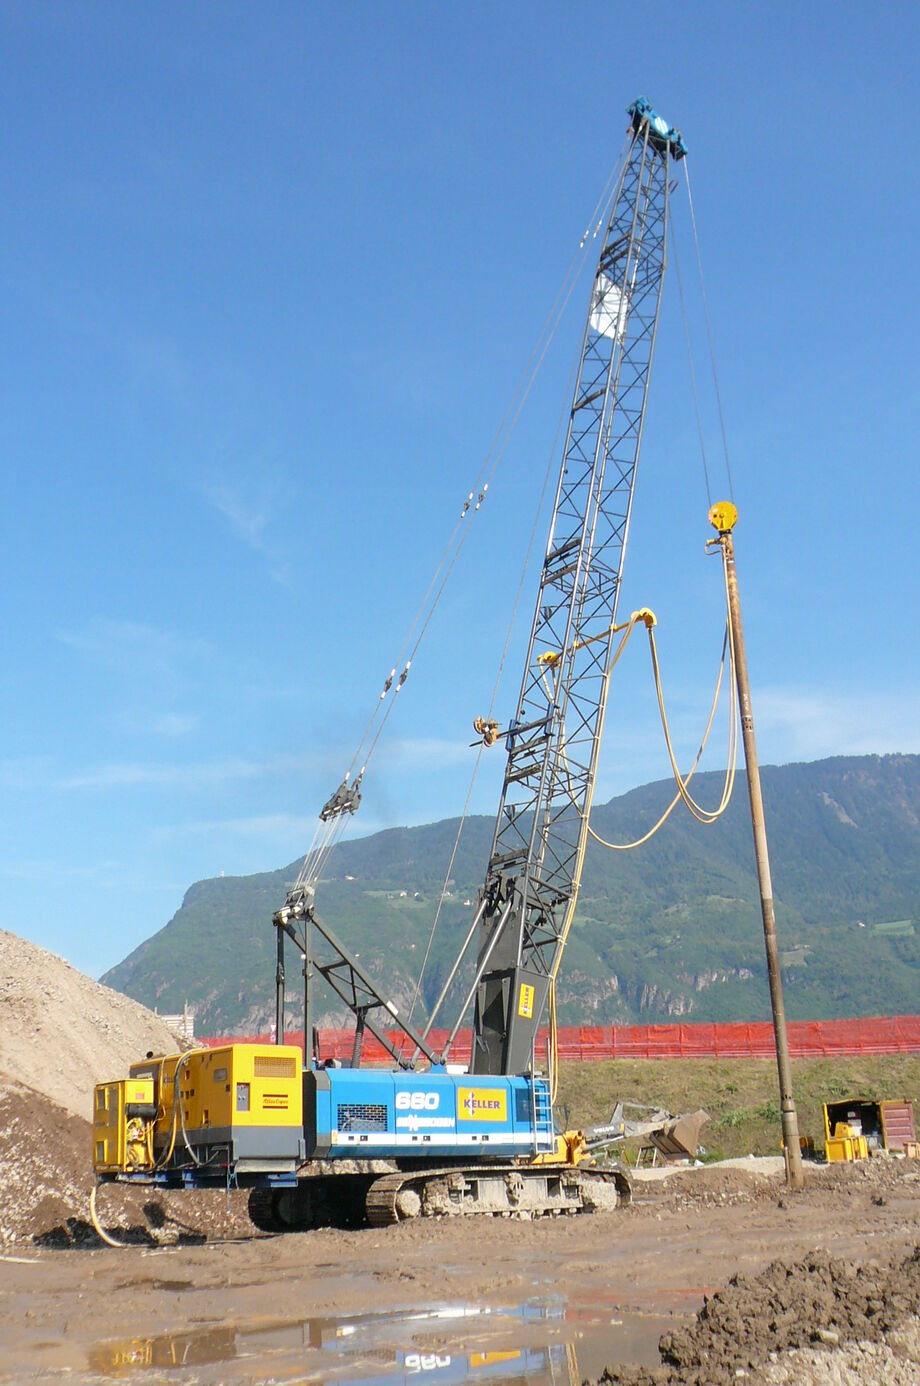 SENNEBOGEN 690 Crawler Duty cycle crane Dragline Hydro duty cycle crane Ground compaction